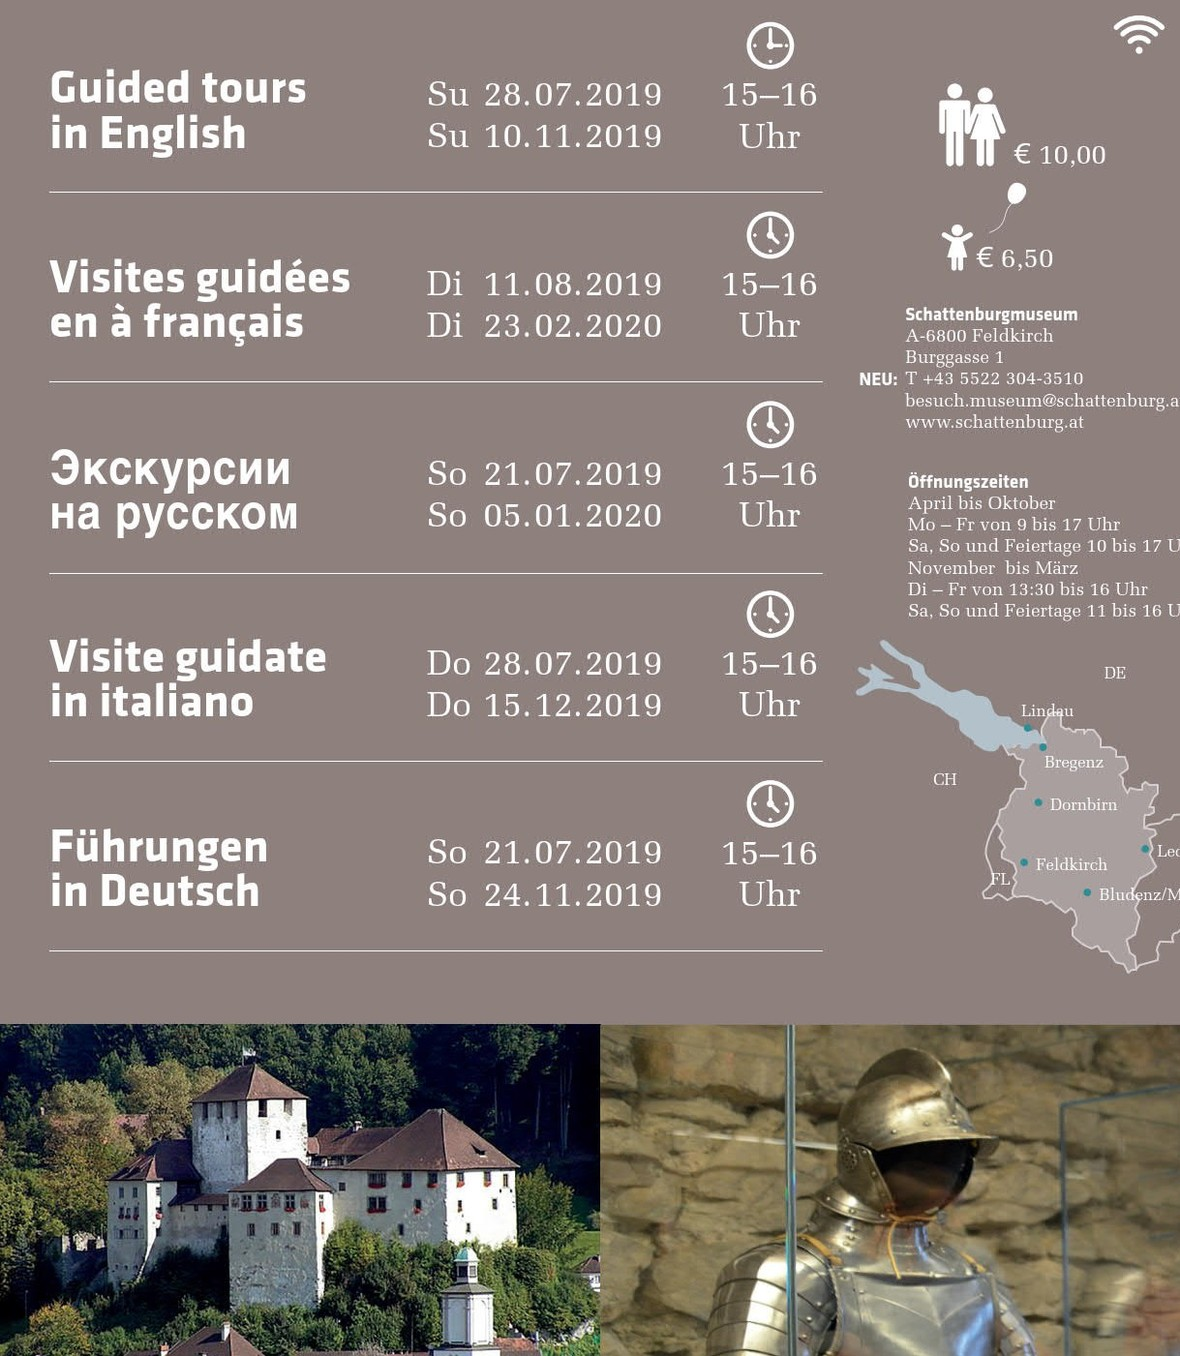 Public guided tour in English 2019-2020